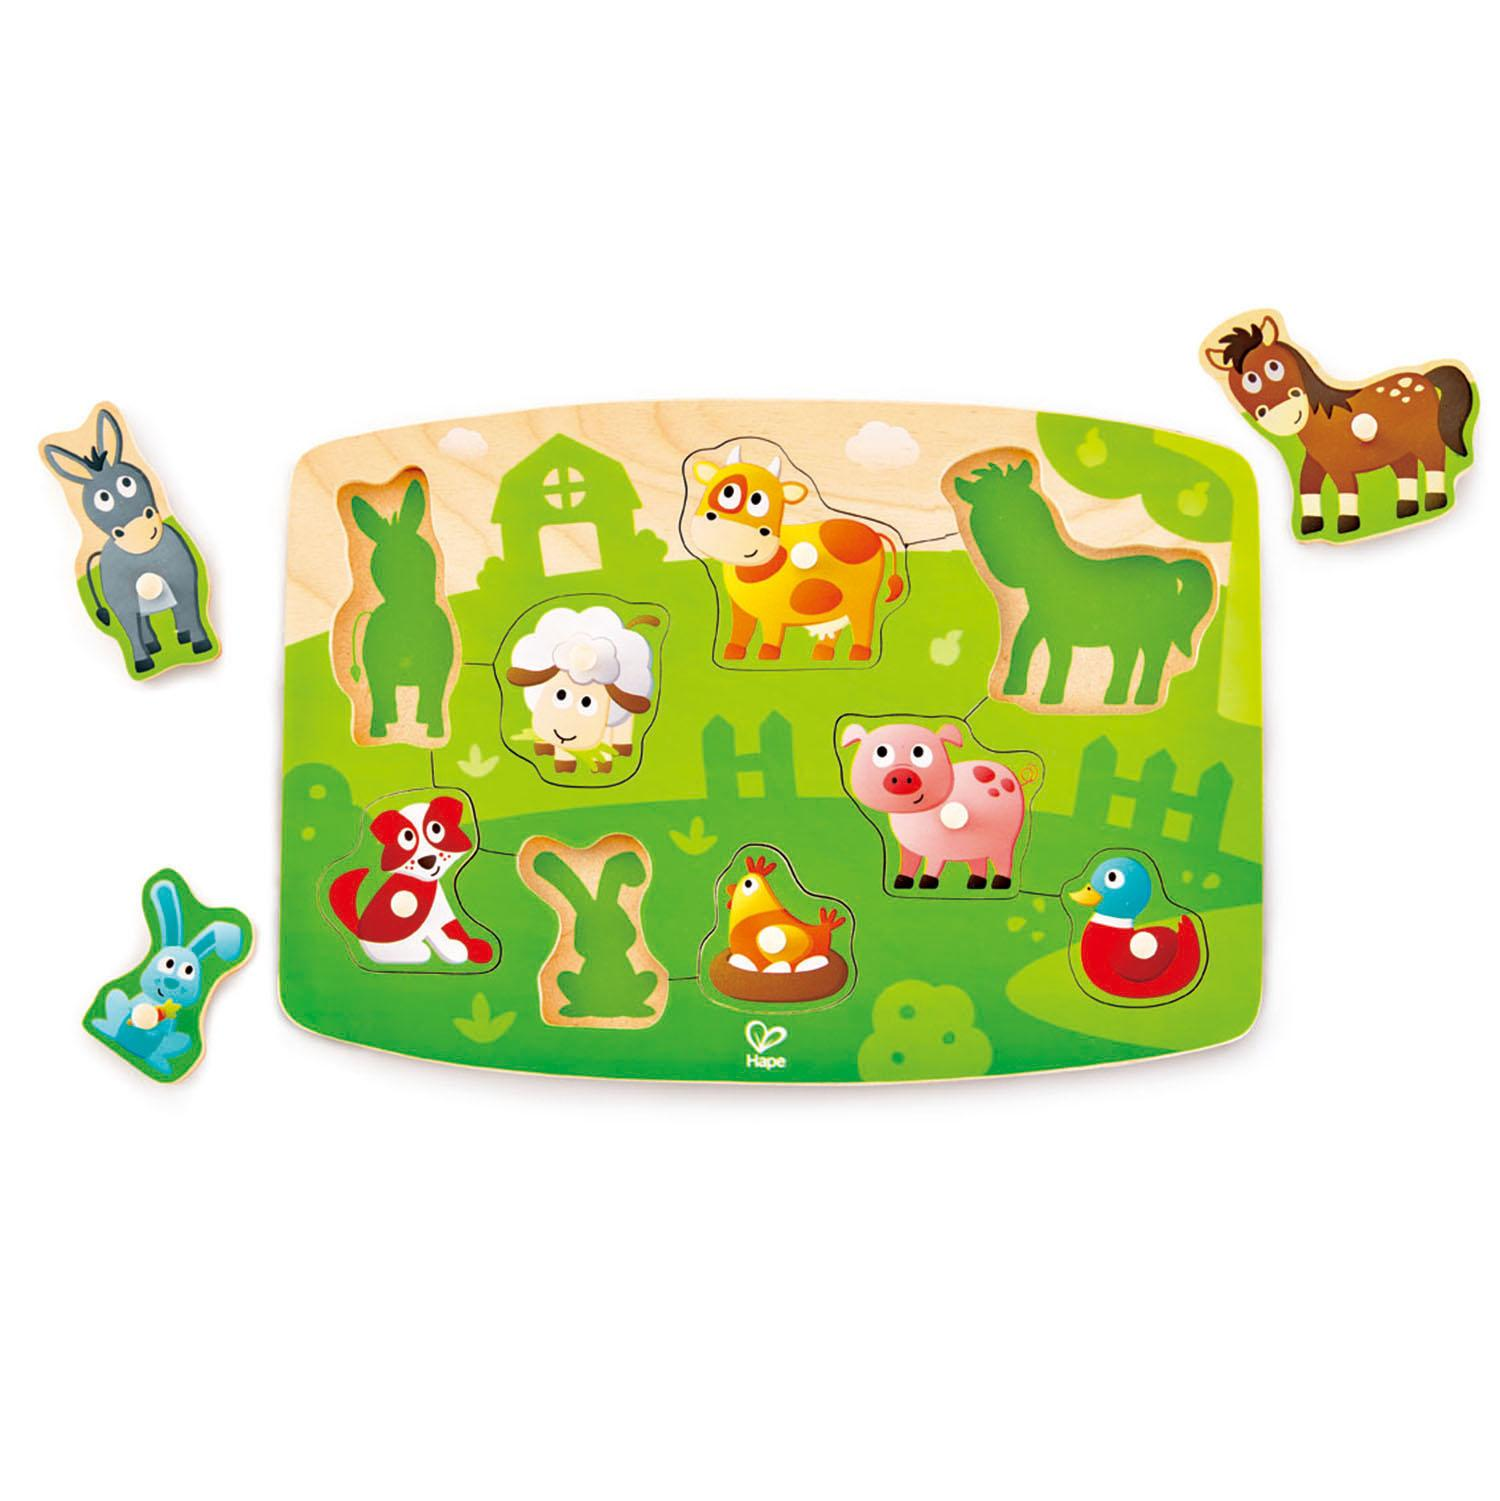 Farmyard-themed wooden puzzle with different animals that have been lifted out.